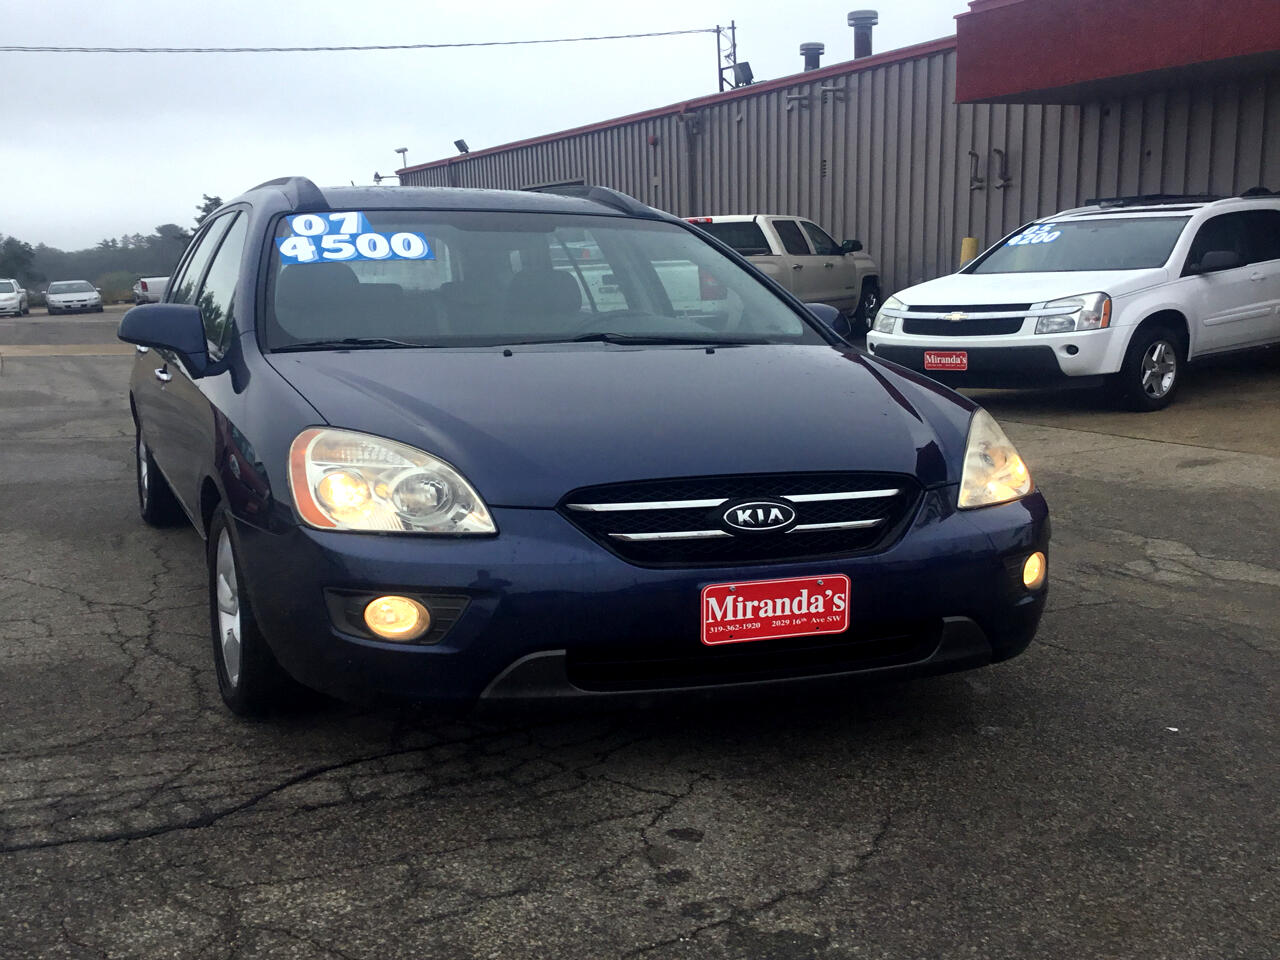 used 2007 kia rondo base for sale in cedar rapids ia 52404 miranda s auto sales repair miranda s auto sales repair